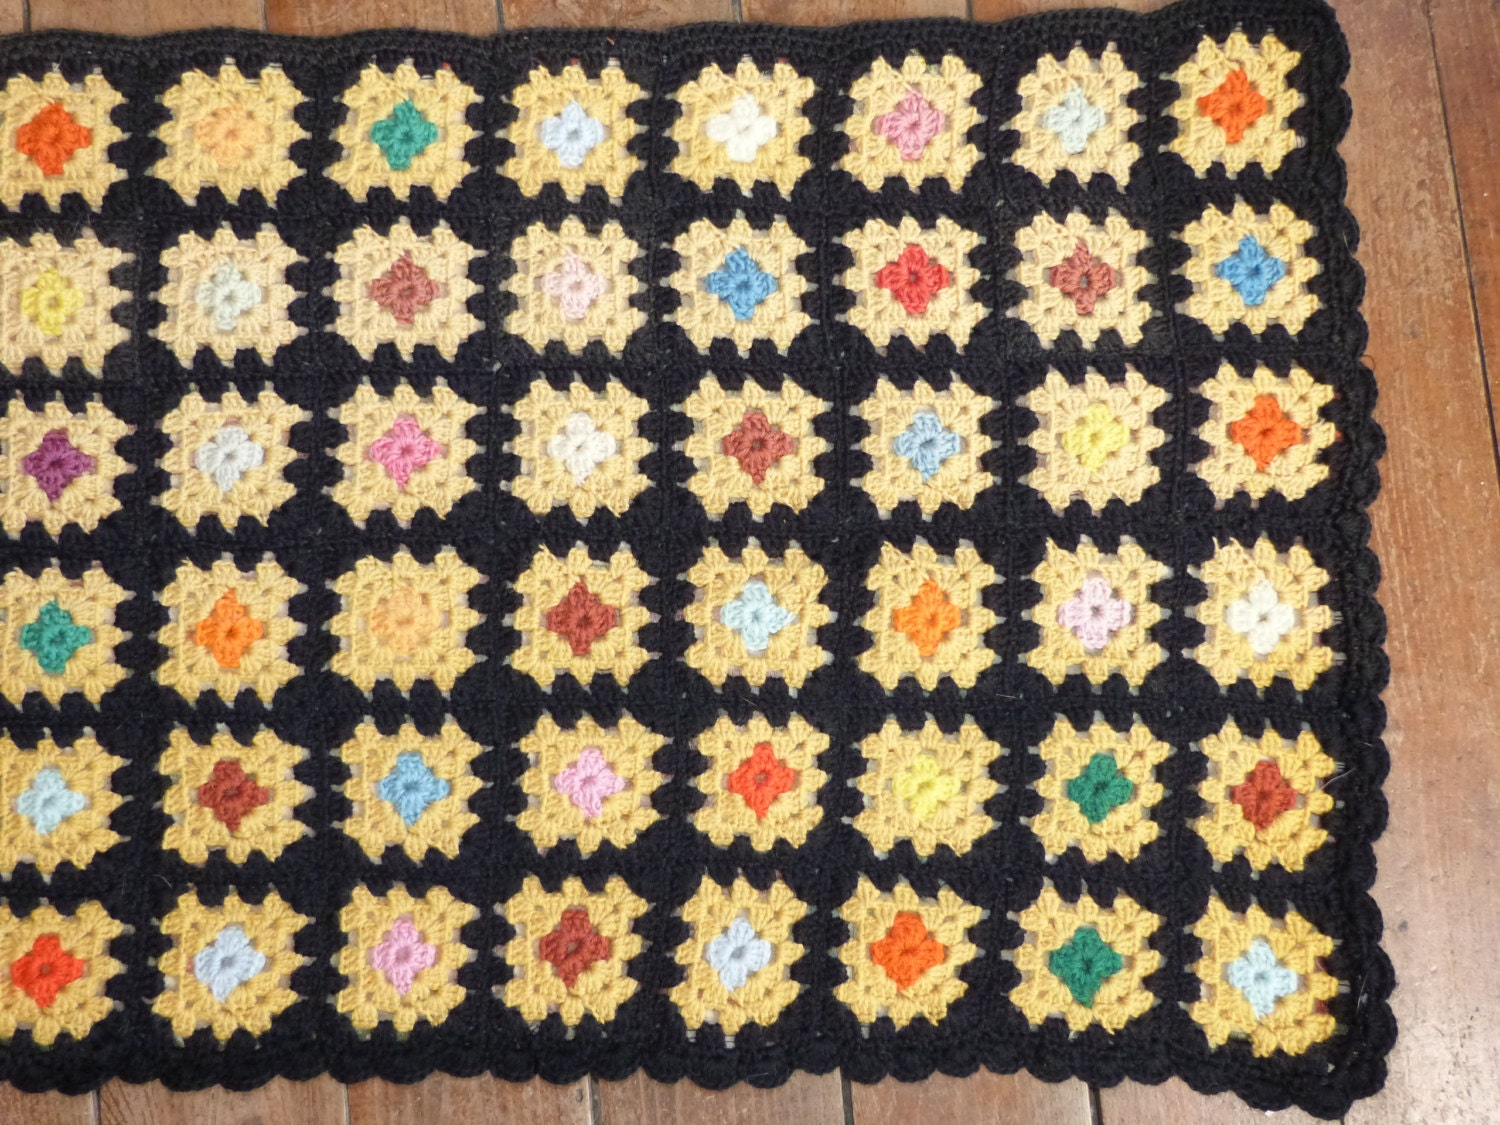 Crochet Granny Square Rug Patterns : Vintage crocheted granny square crochet rug carpet runner